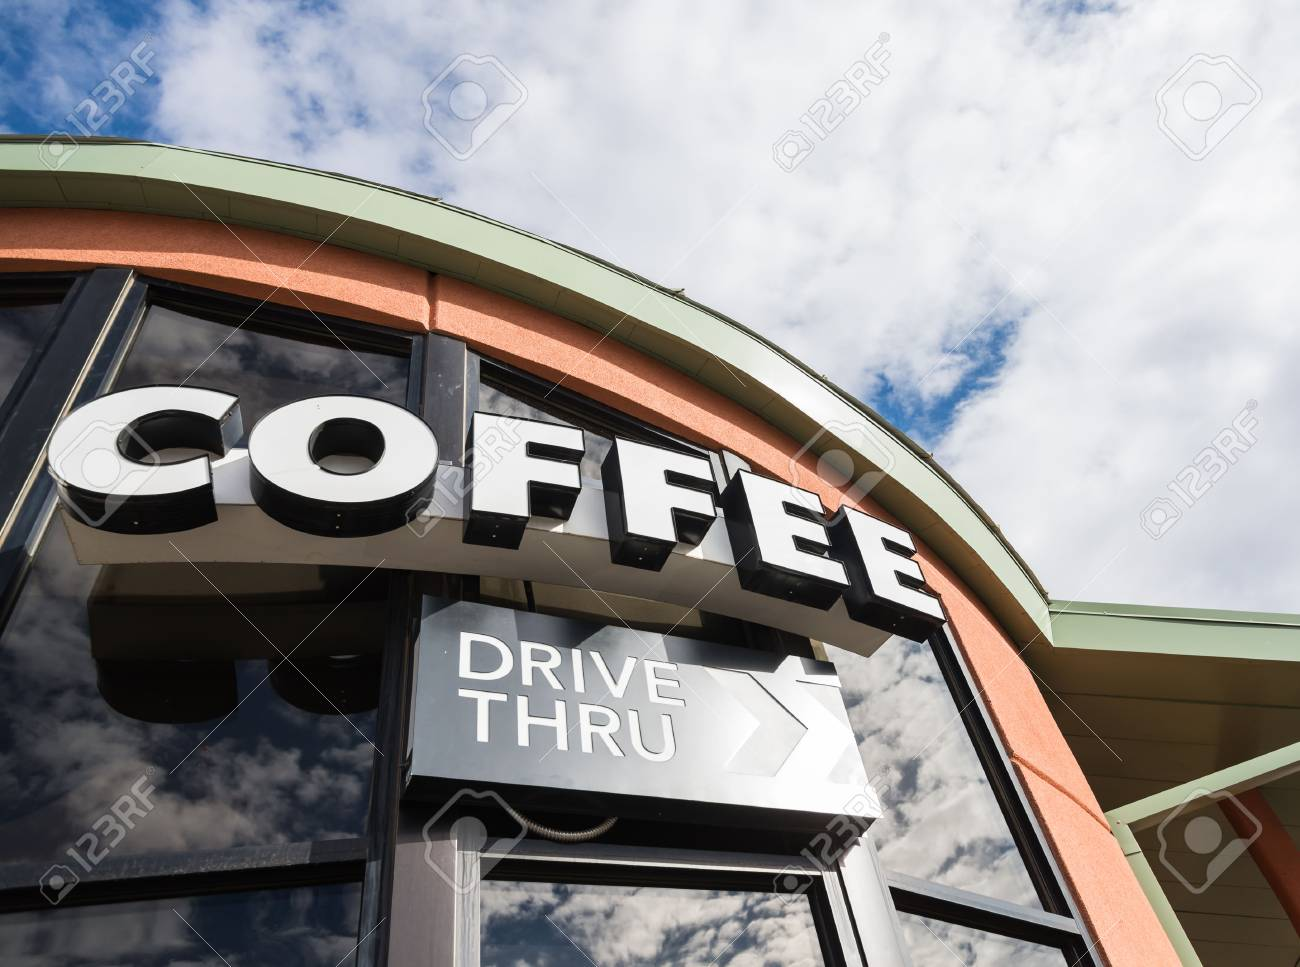 Coffee drive thru sign with cloudy sky Banque d'images - 51150752